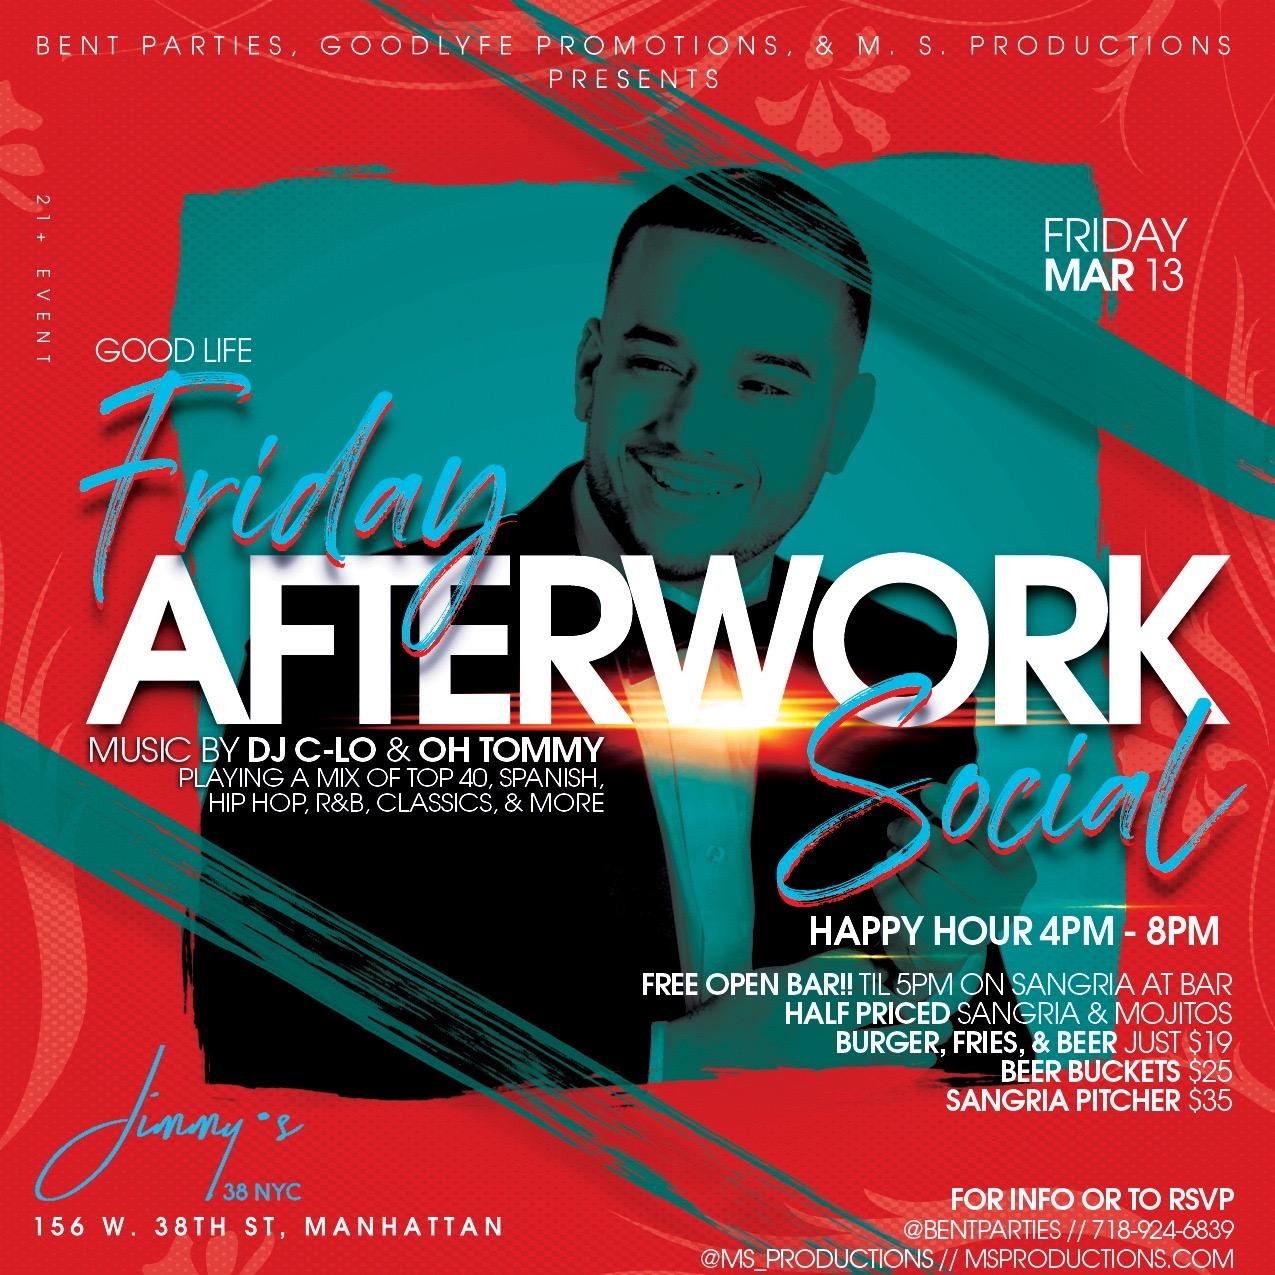 The Good Life Afterwork Fridays at Jimmys This Week